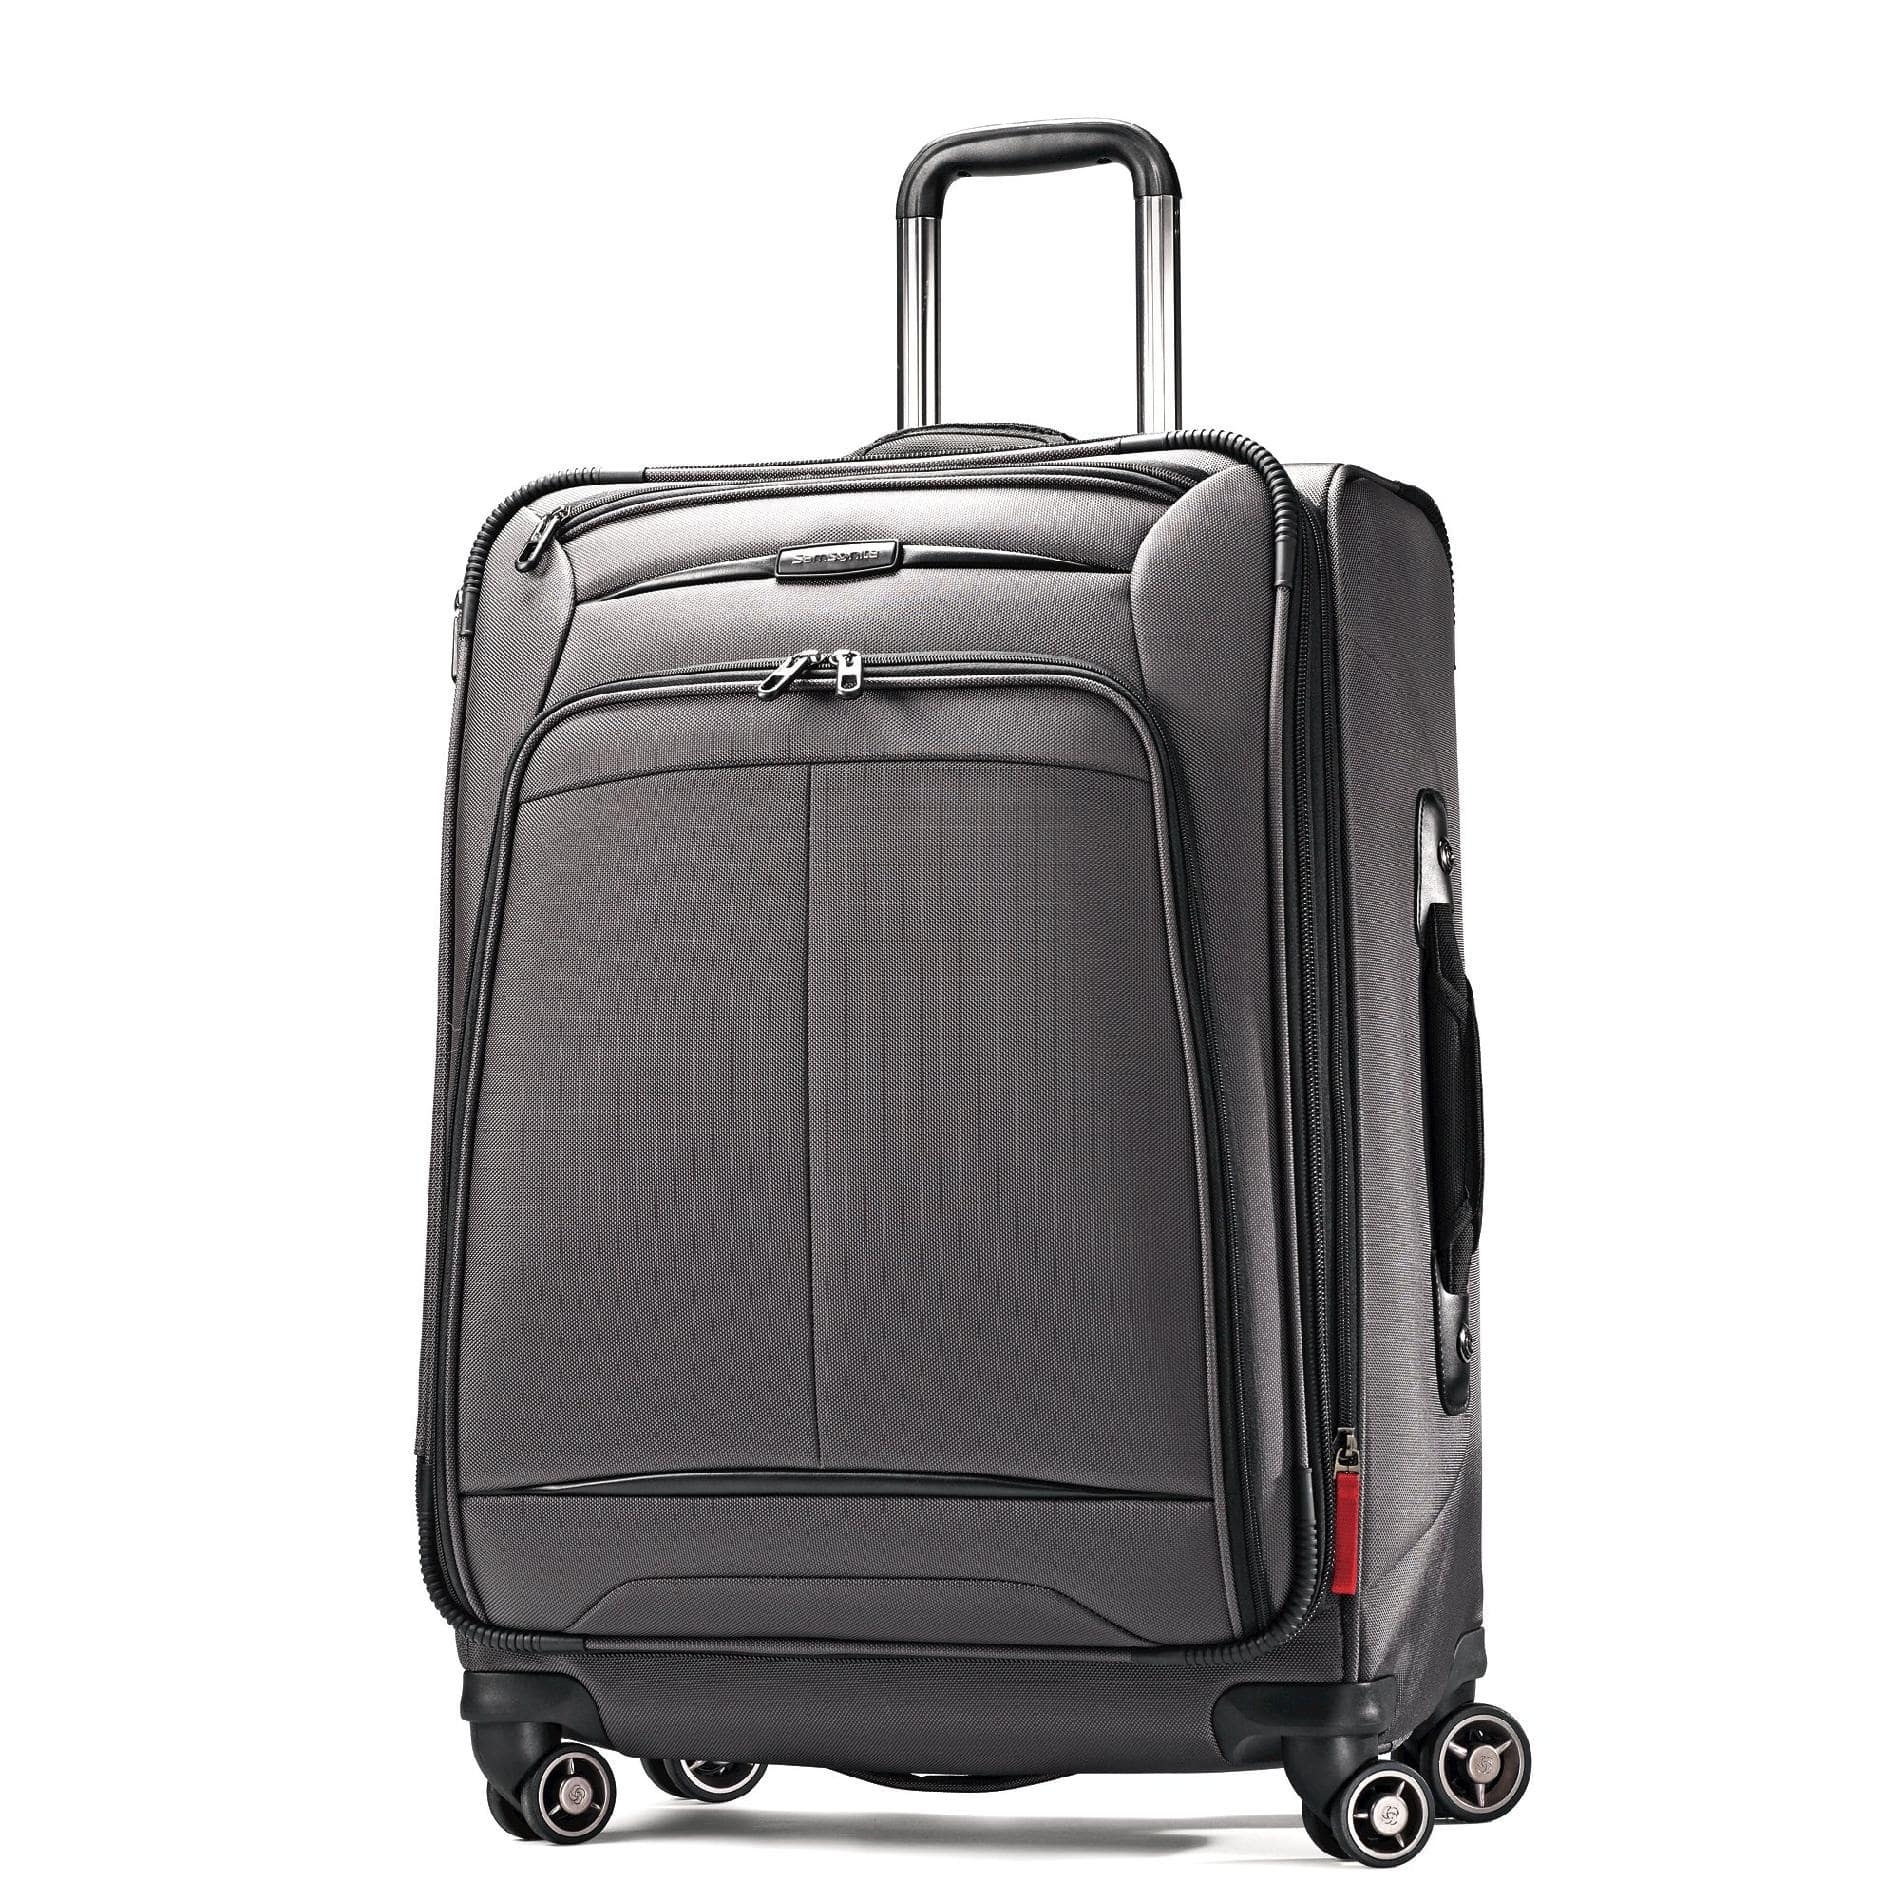 Multiple home items on massive clearance at sears and kmart, Samsonite Traveler Spinner  and More YMMV